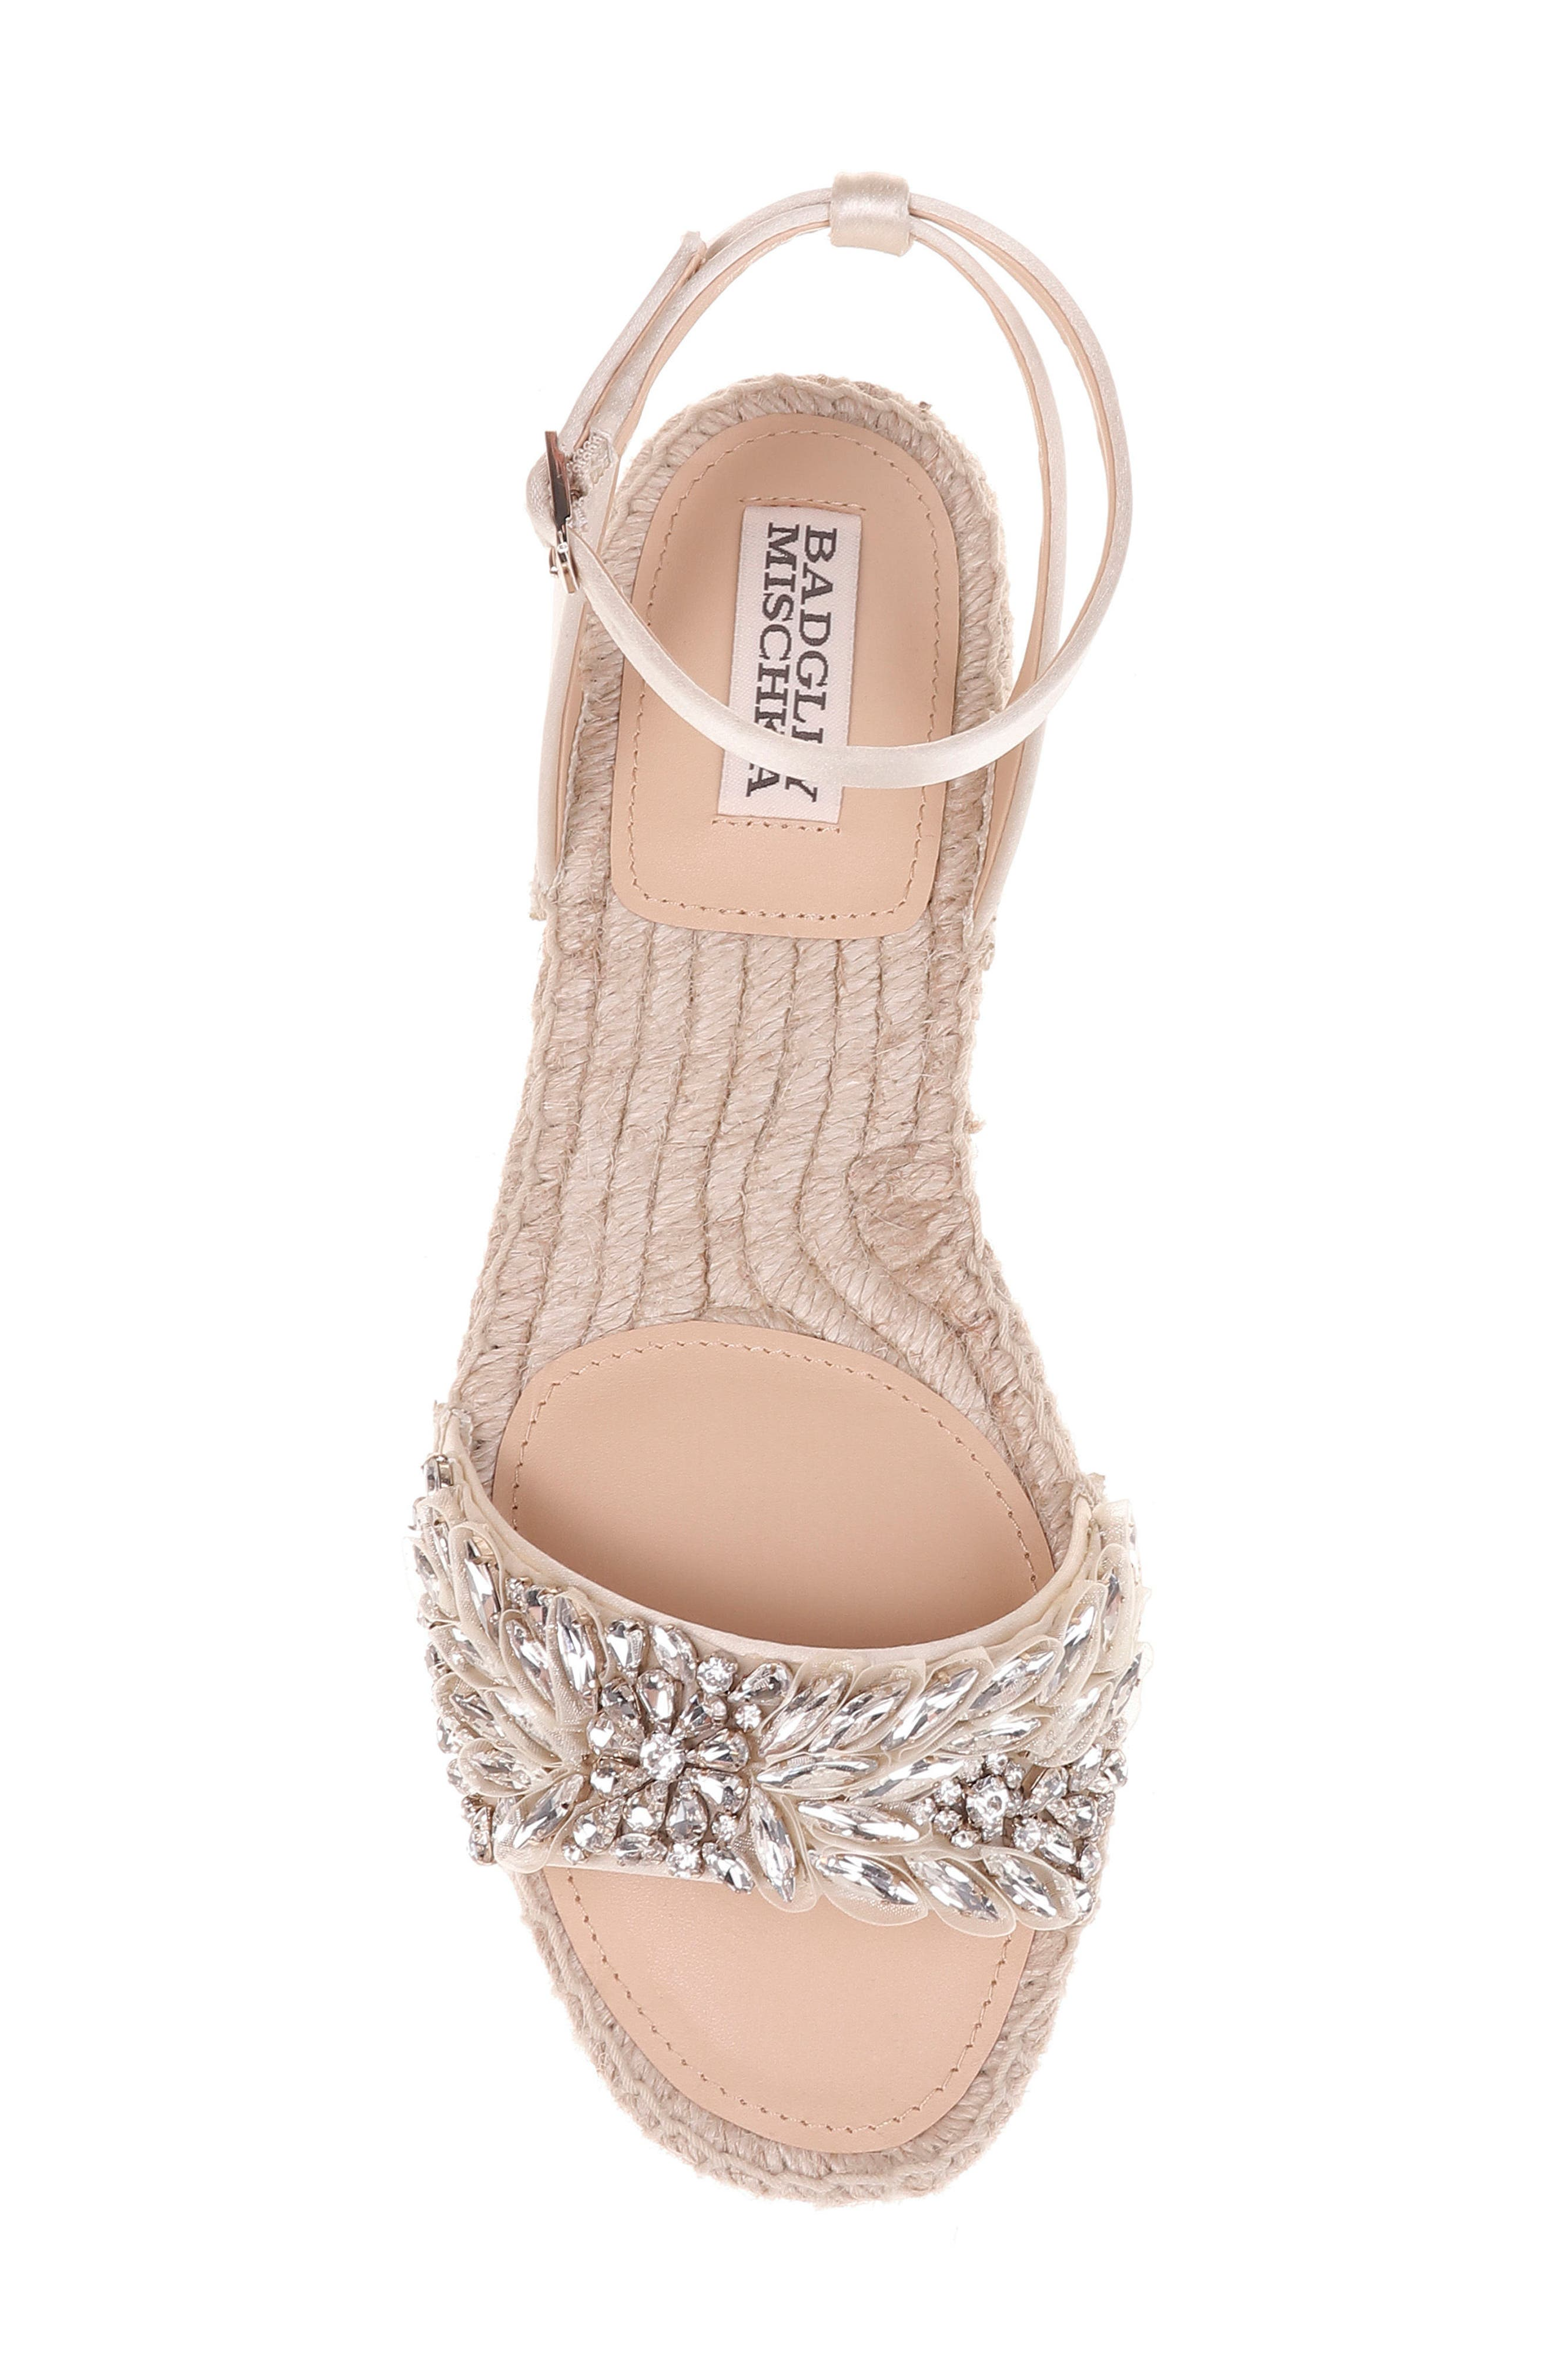 Satine Espadrille Sandal,                             Alternate thumbnail 5, color,                             Ivory Satin